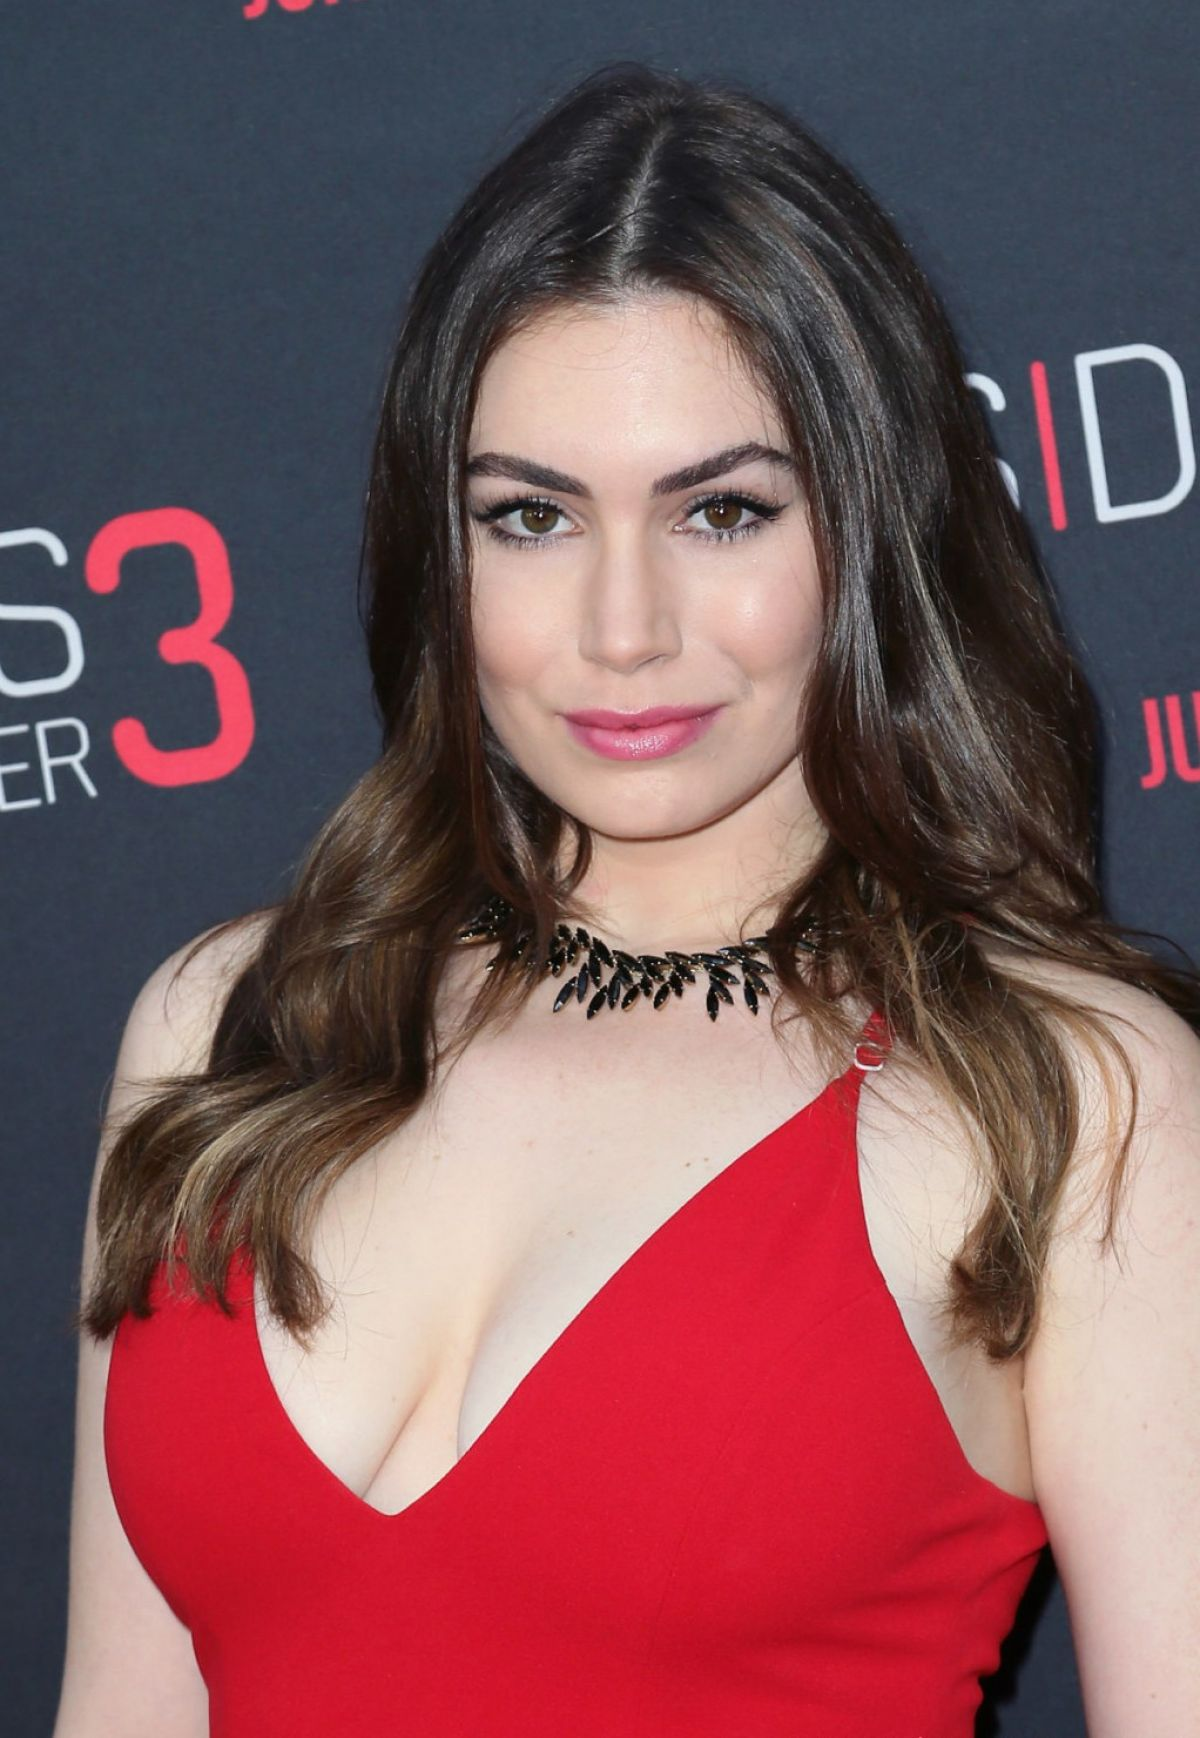 how tall is sophie simmons